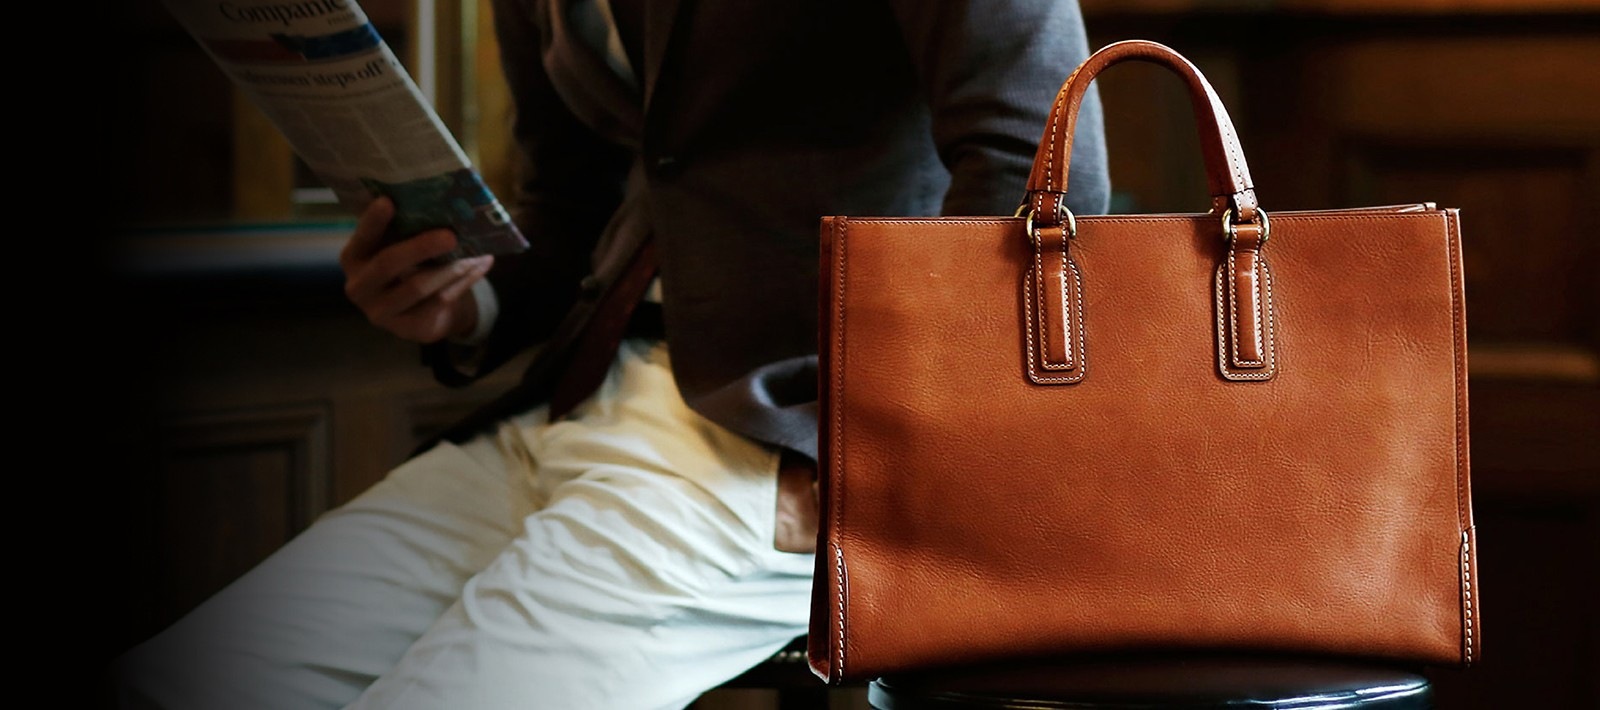 Brand strategy for a handbag company